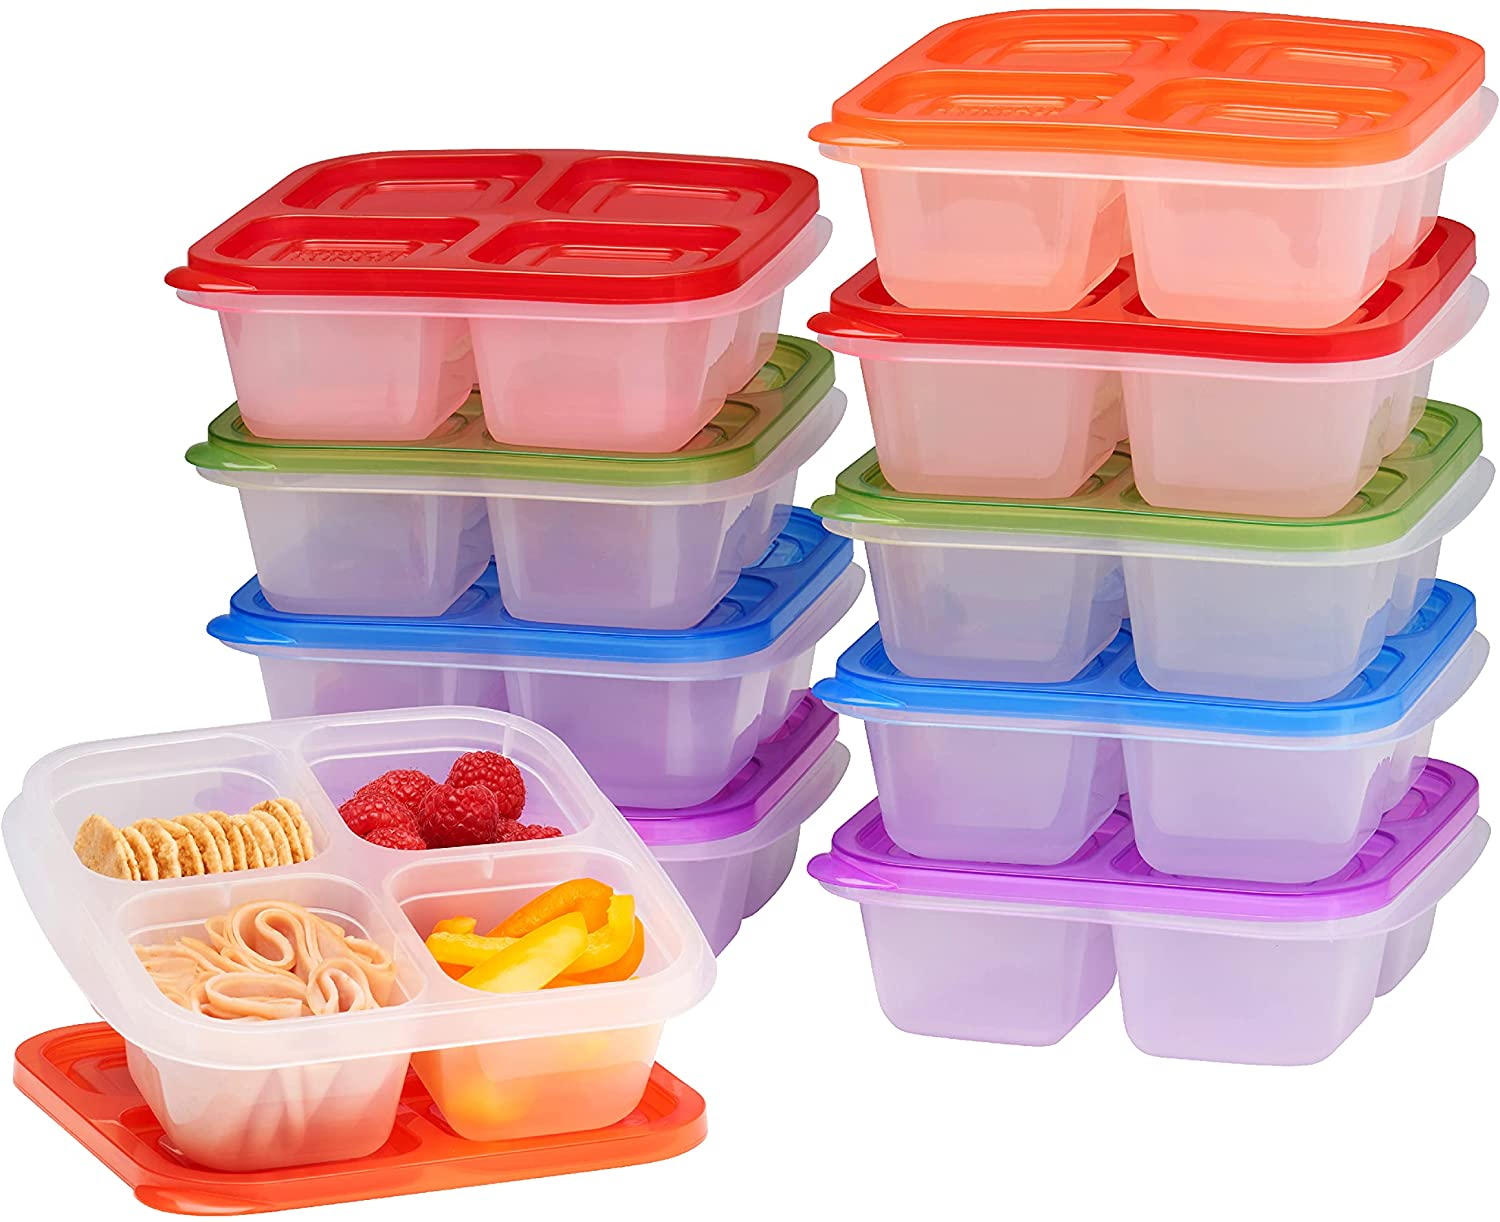 EasyLunchboxes - Bento Snack Boxes - Reusable 4-Compartment Food Containers for School, Work and Travel, Set of 10, (Classic)